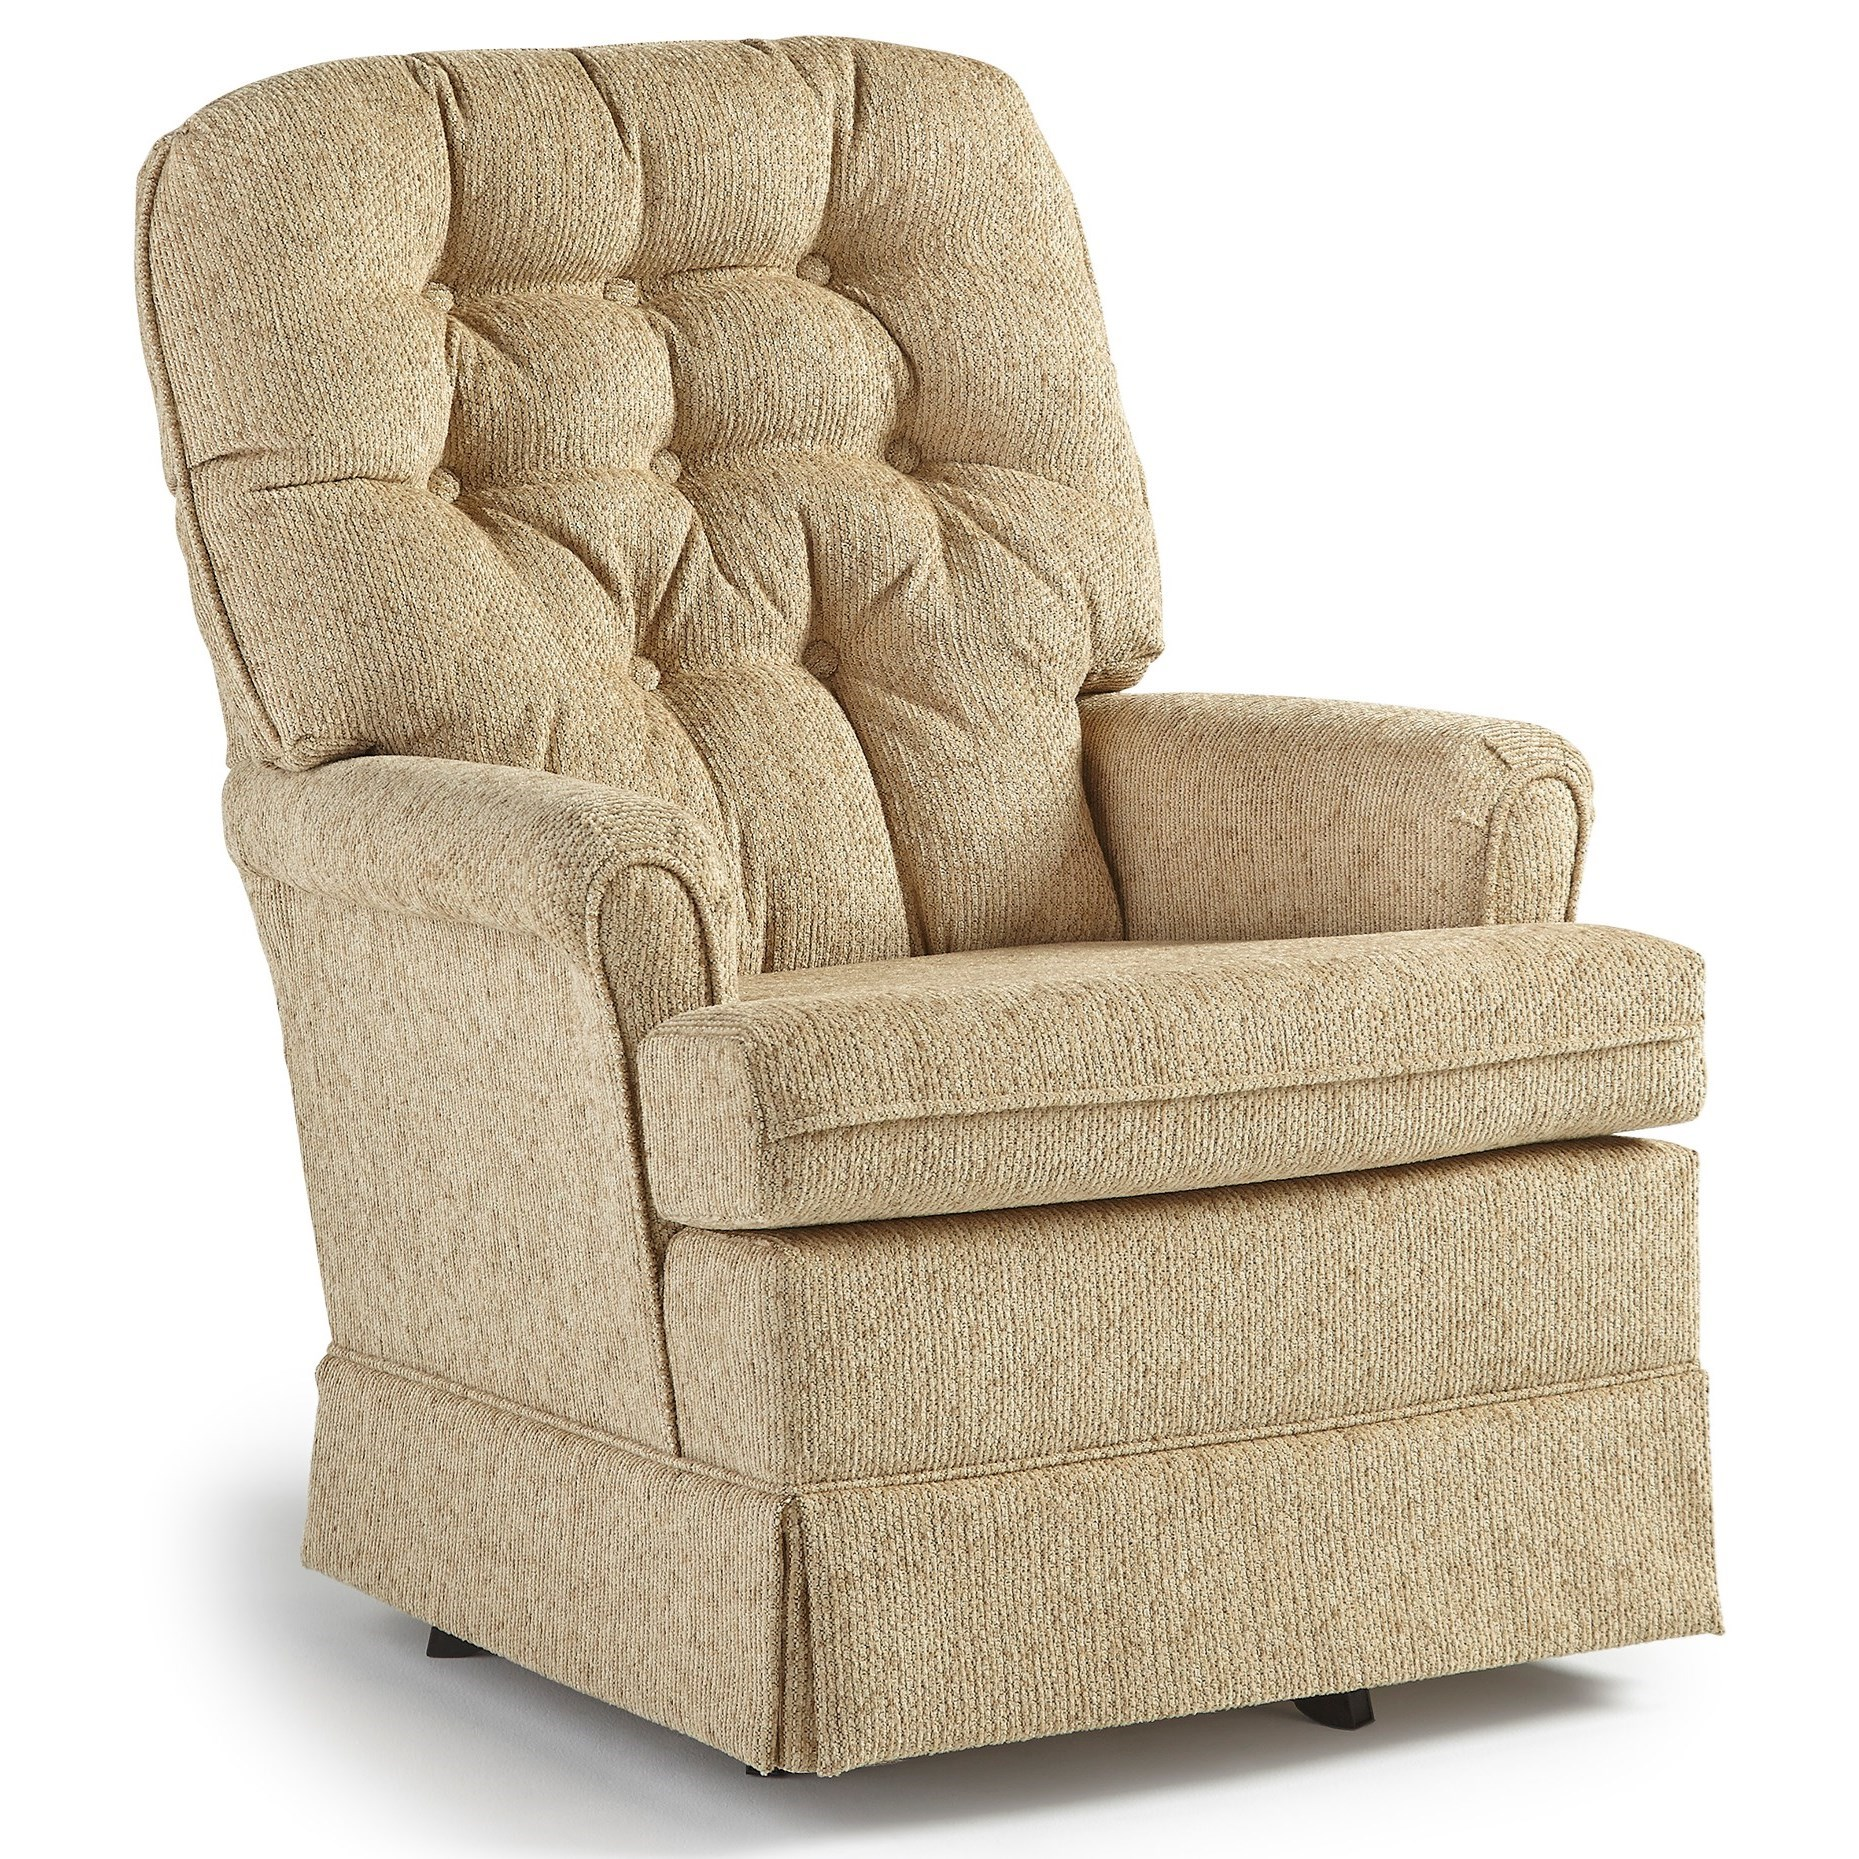 Wonderful Best Home Furnishings Chairs   Swivel Glide Joplin Swivel Rocker Chair    Item Number: H1009